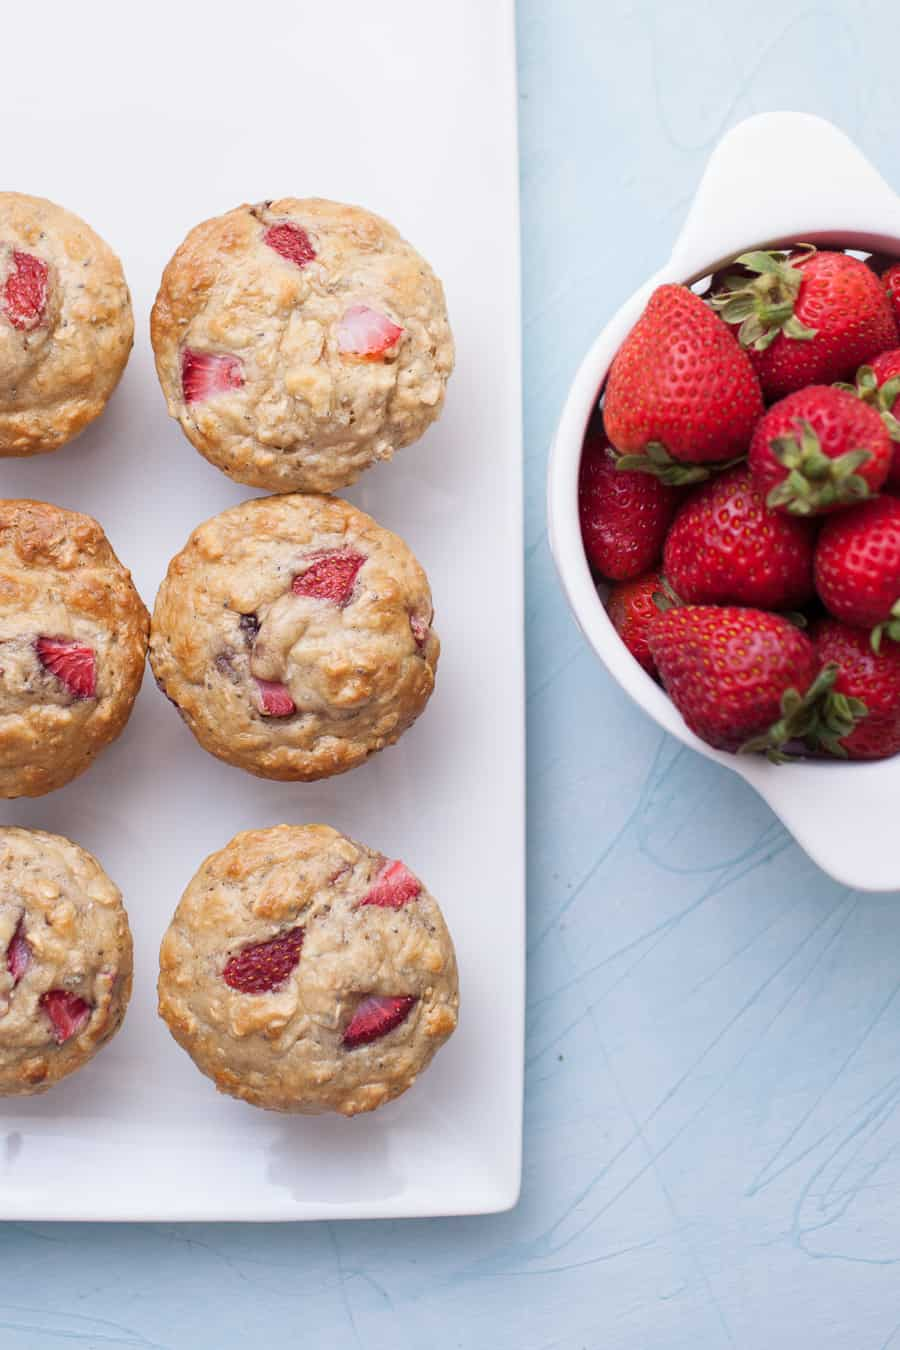 No Sugar Added Strawberry Chia Seed Muffins are such a fun treat to have on hand this week! They are so easy to make, no fancy ingredients required, even though they are sugar free! These no sugar added muffins get their sweetness from applesauce and strawberries, which are really the star of the show. Pack in some extra protein with chia seeds and these muffins are a true powerhouse.?